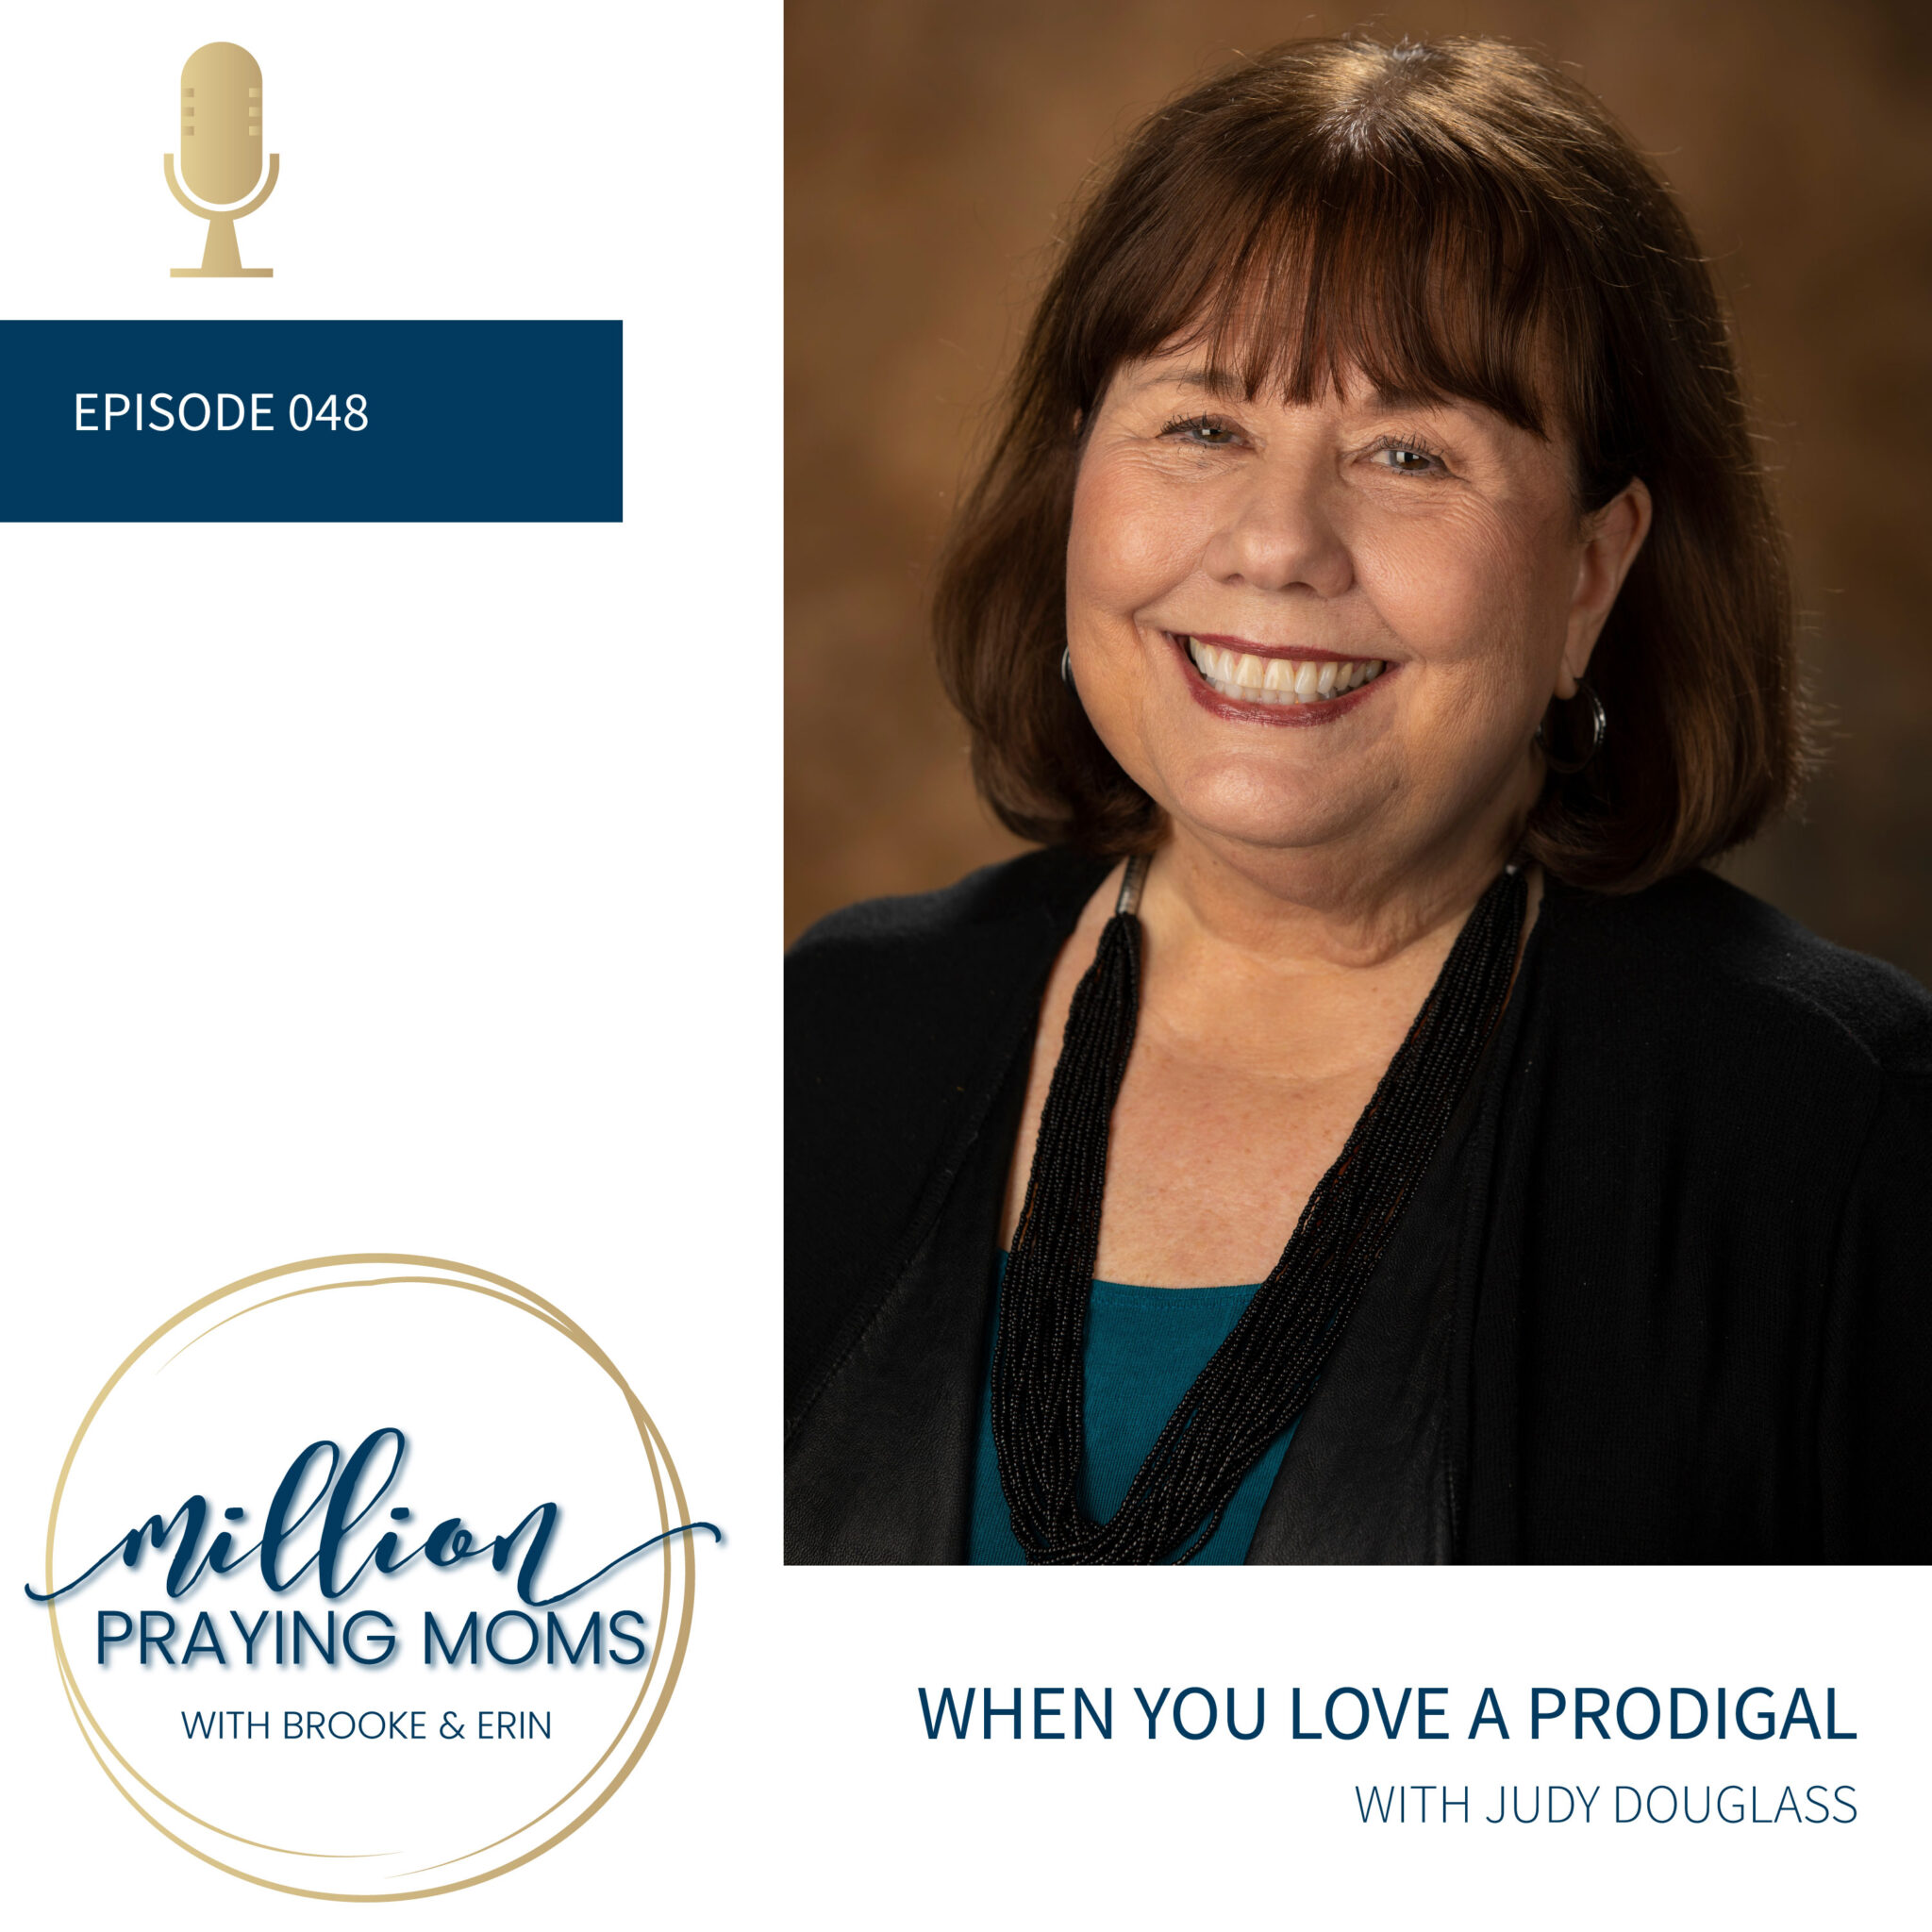 #048: When You Love a Prodigal